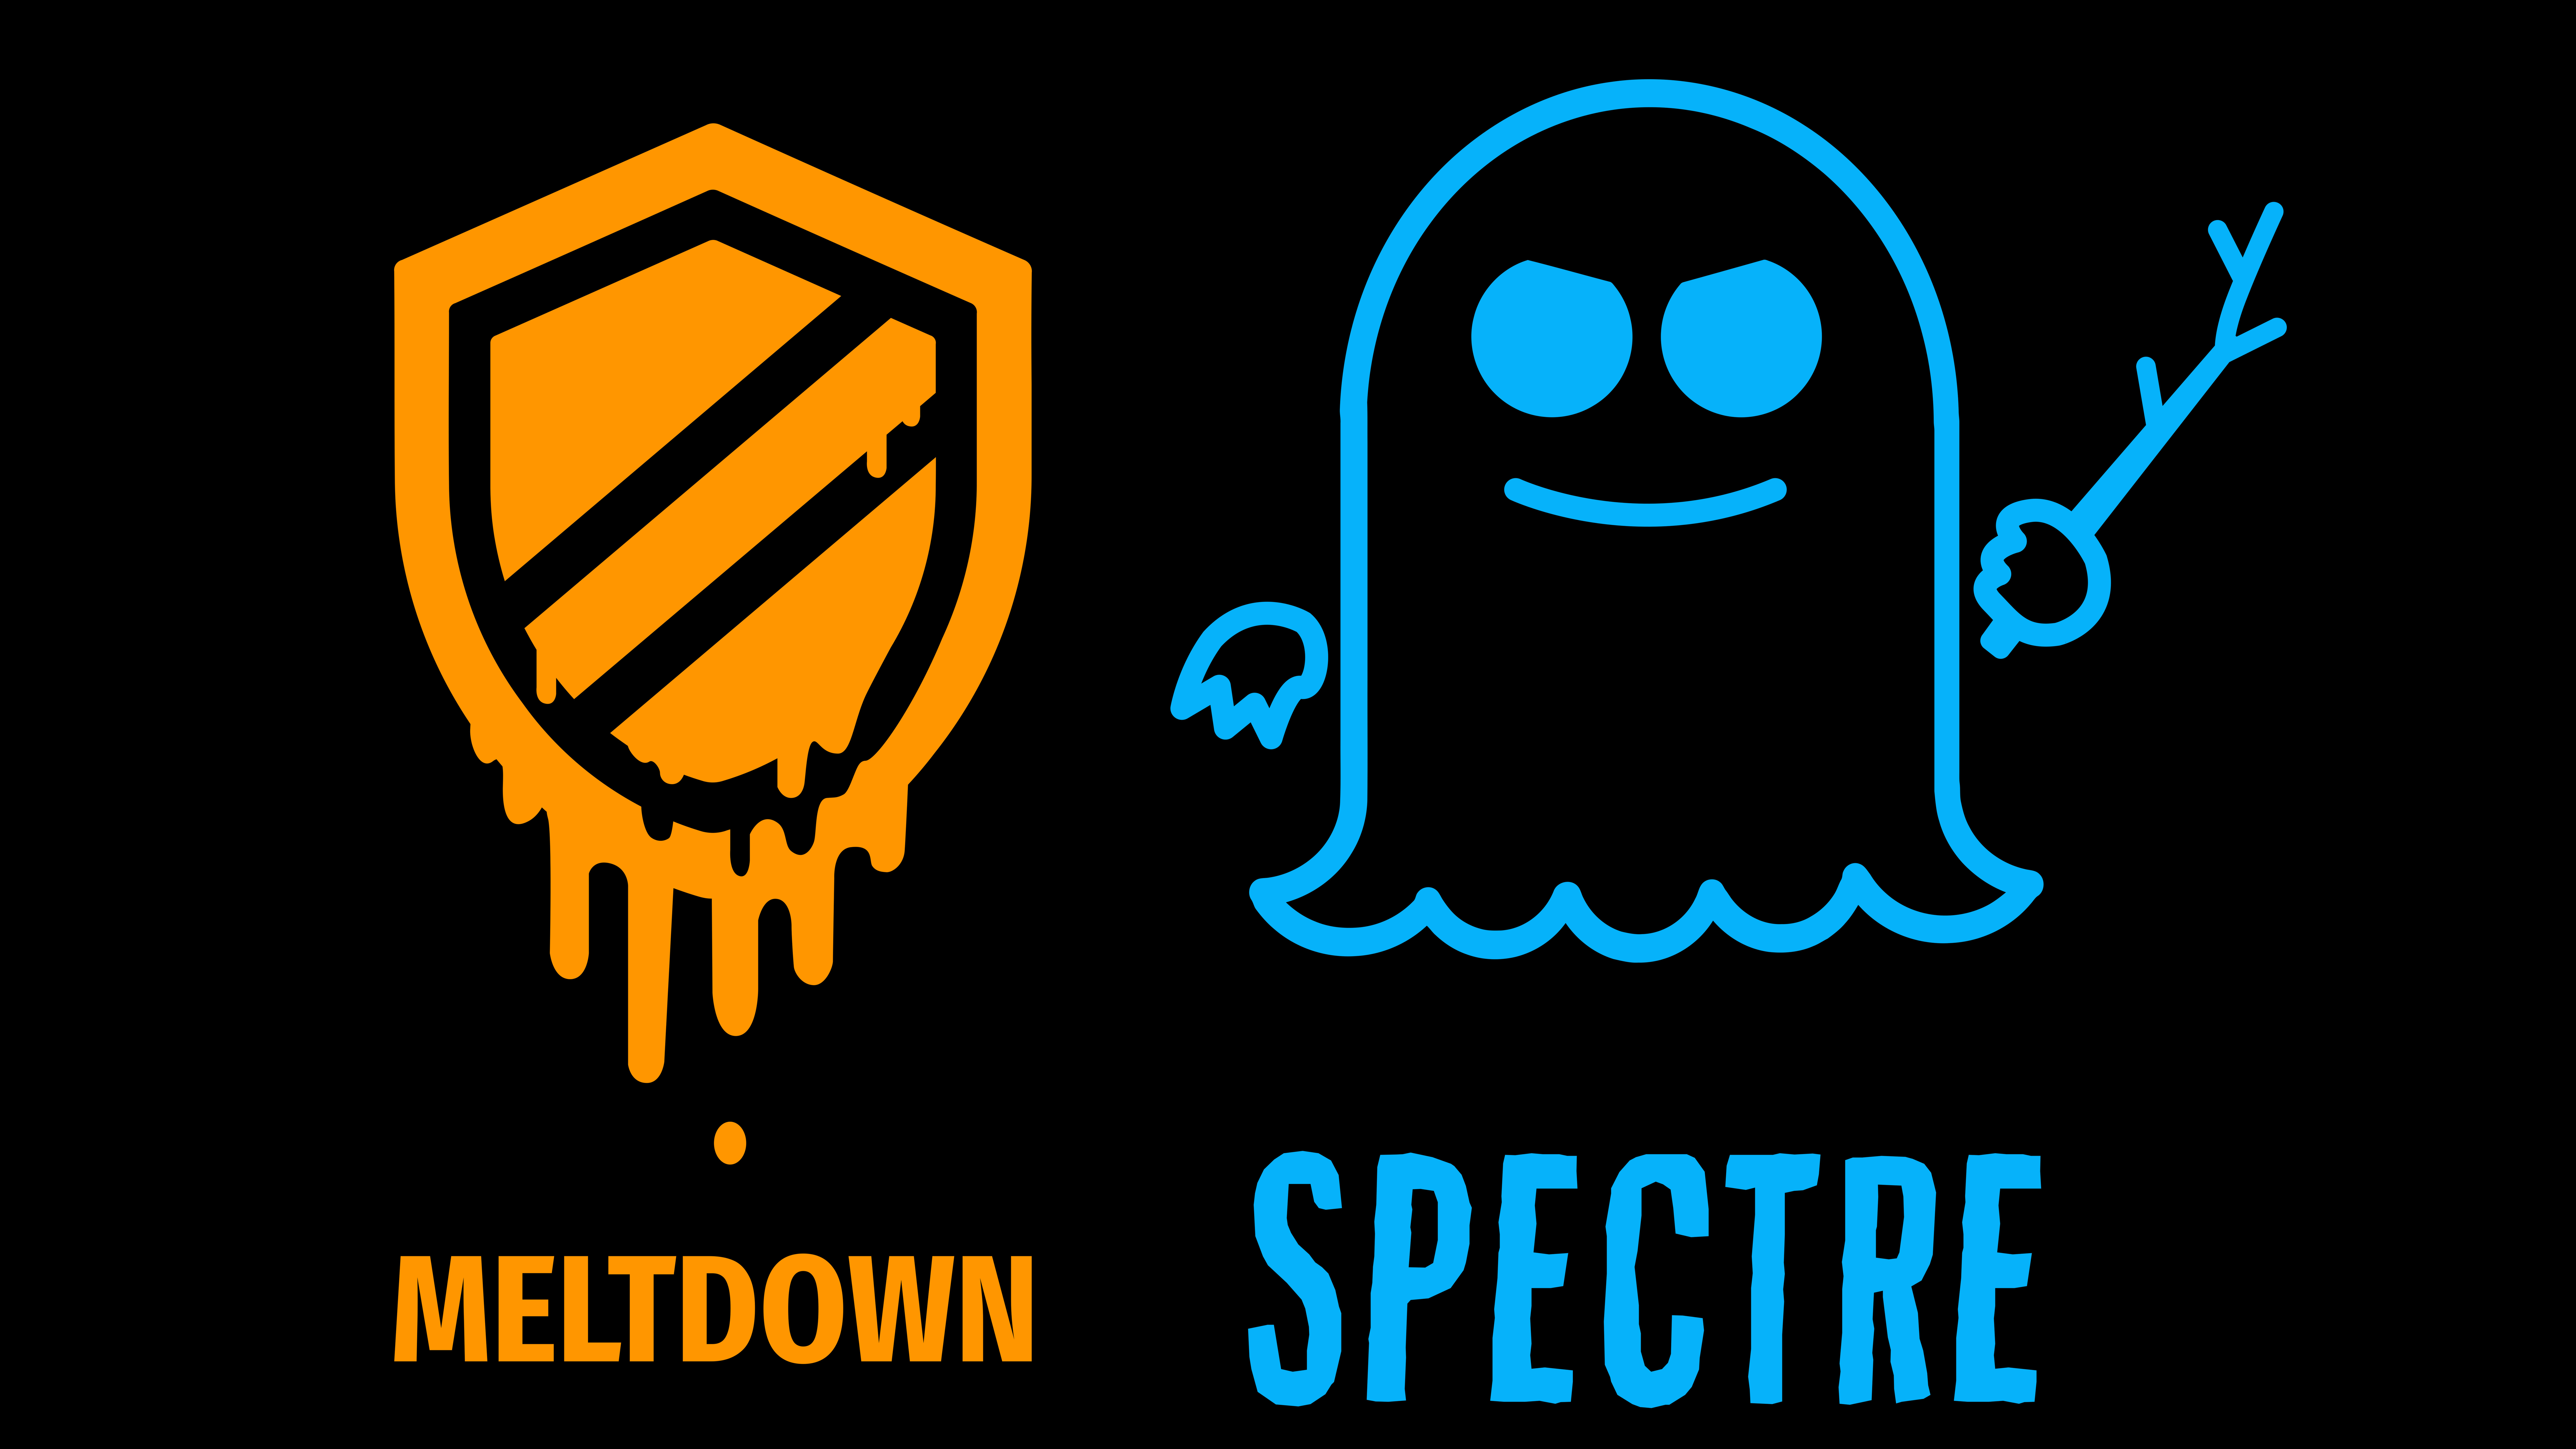 What We Know So Far About Meltdown And Spectre, The Devastating Vulnerabilities In Modern CPUs